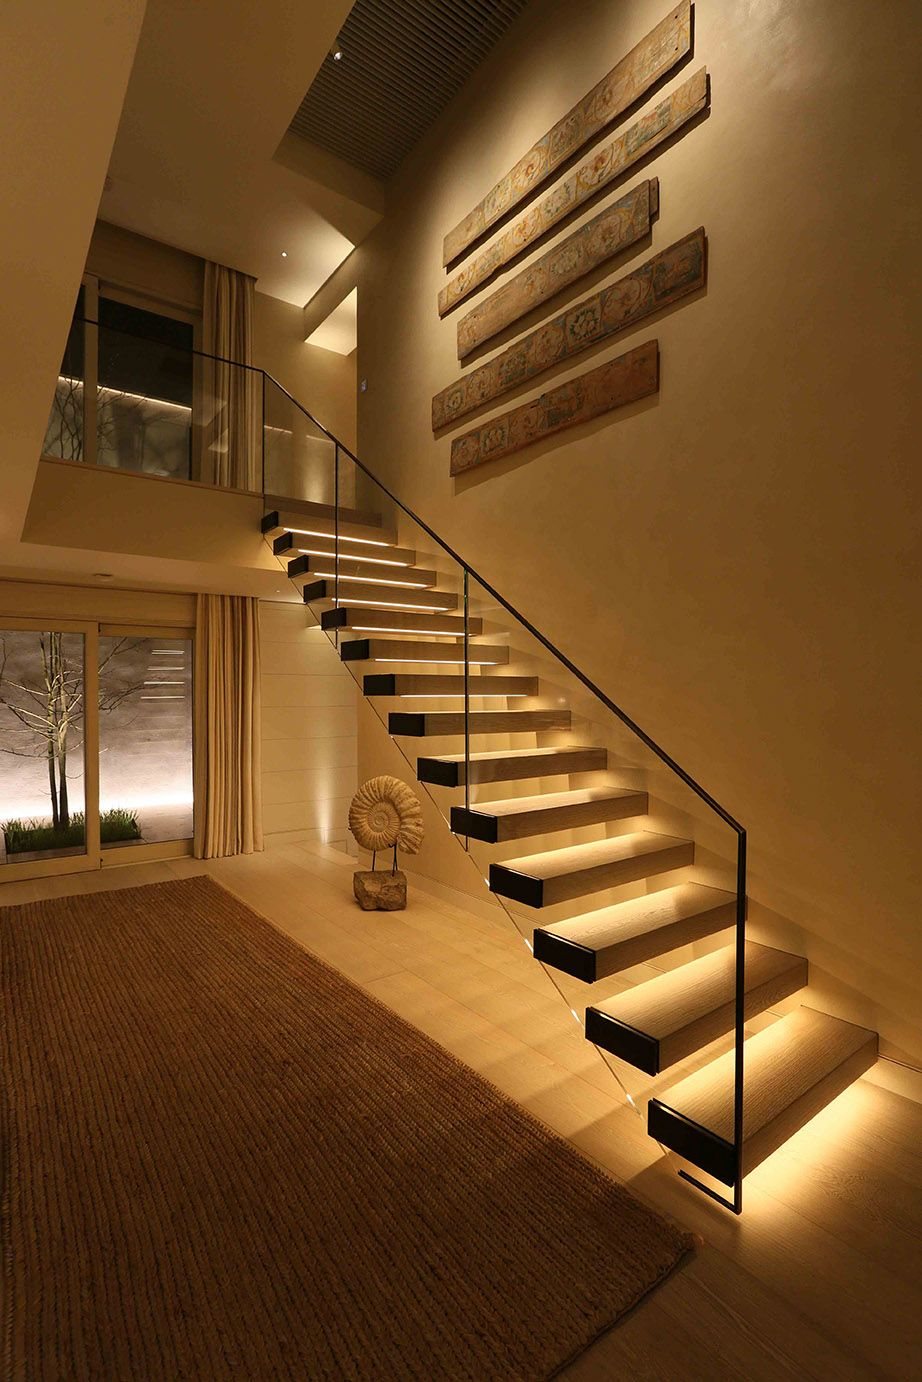 Schon 10 Most Popular Light For Stairways Ideas | Tags: Led Staircase Accent  Lighting, Stairway